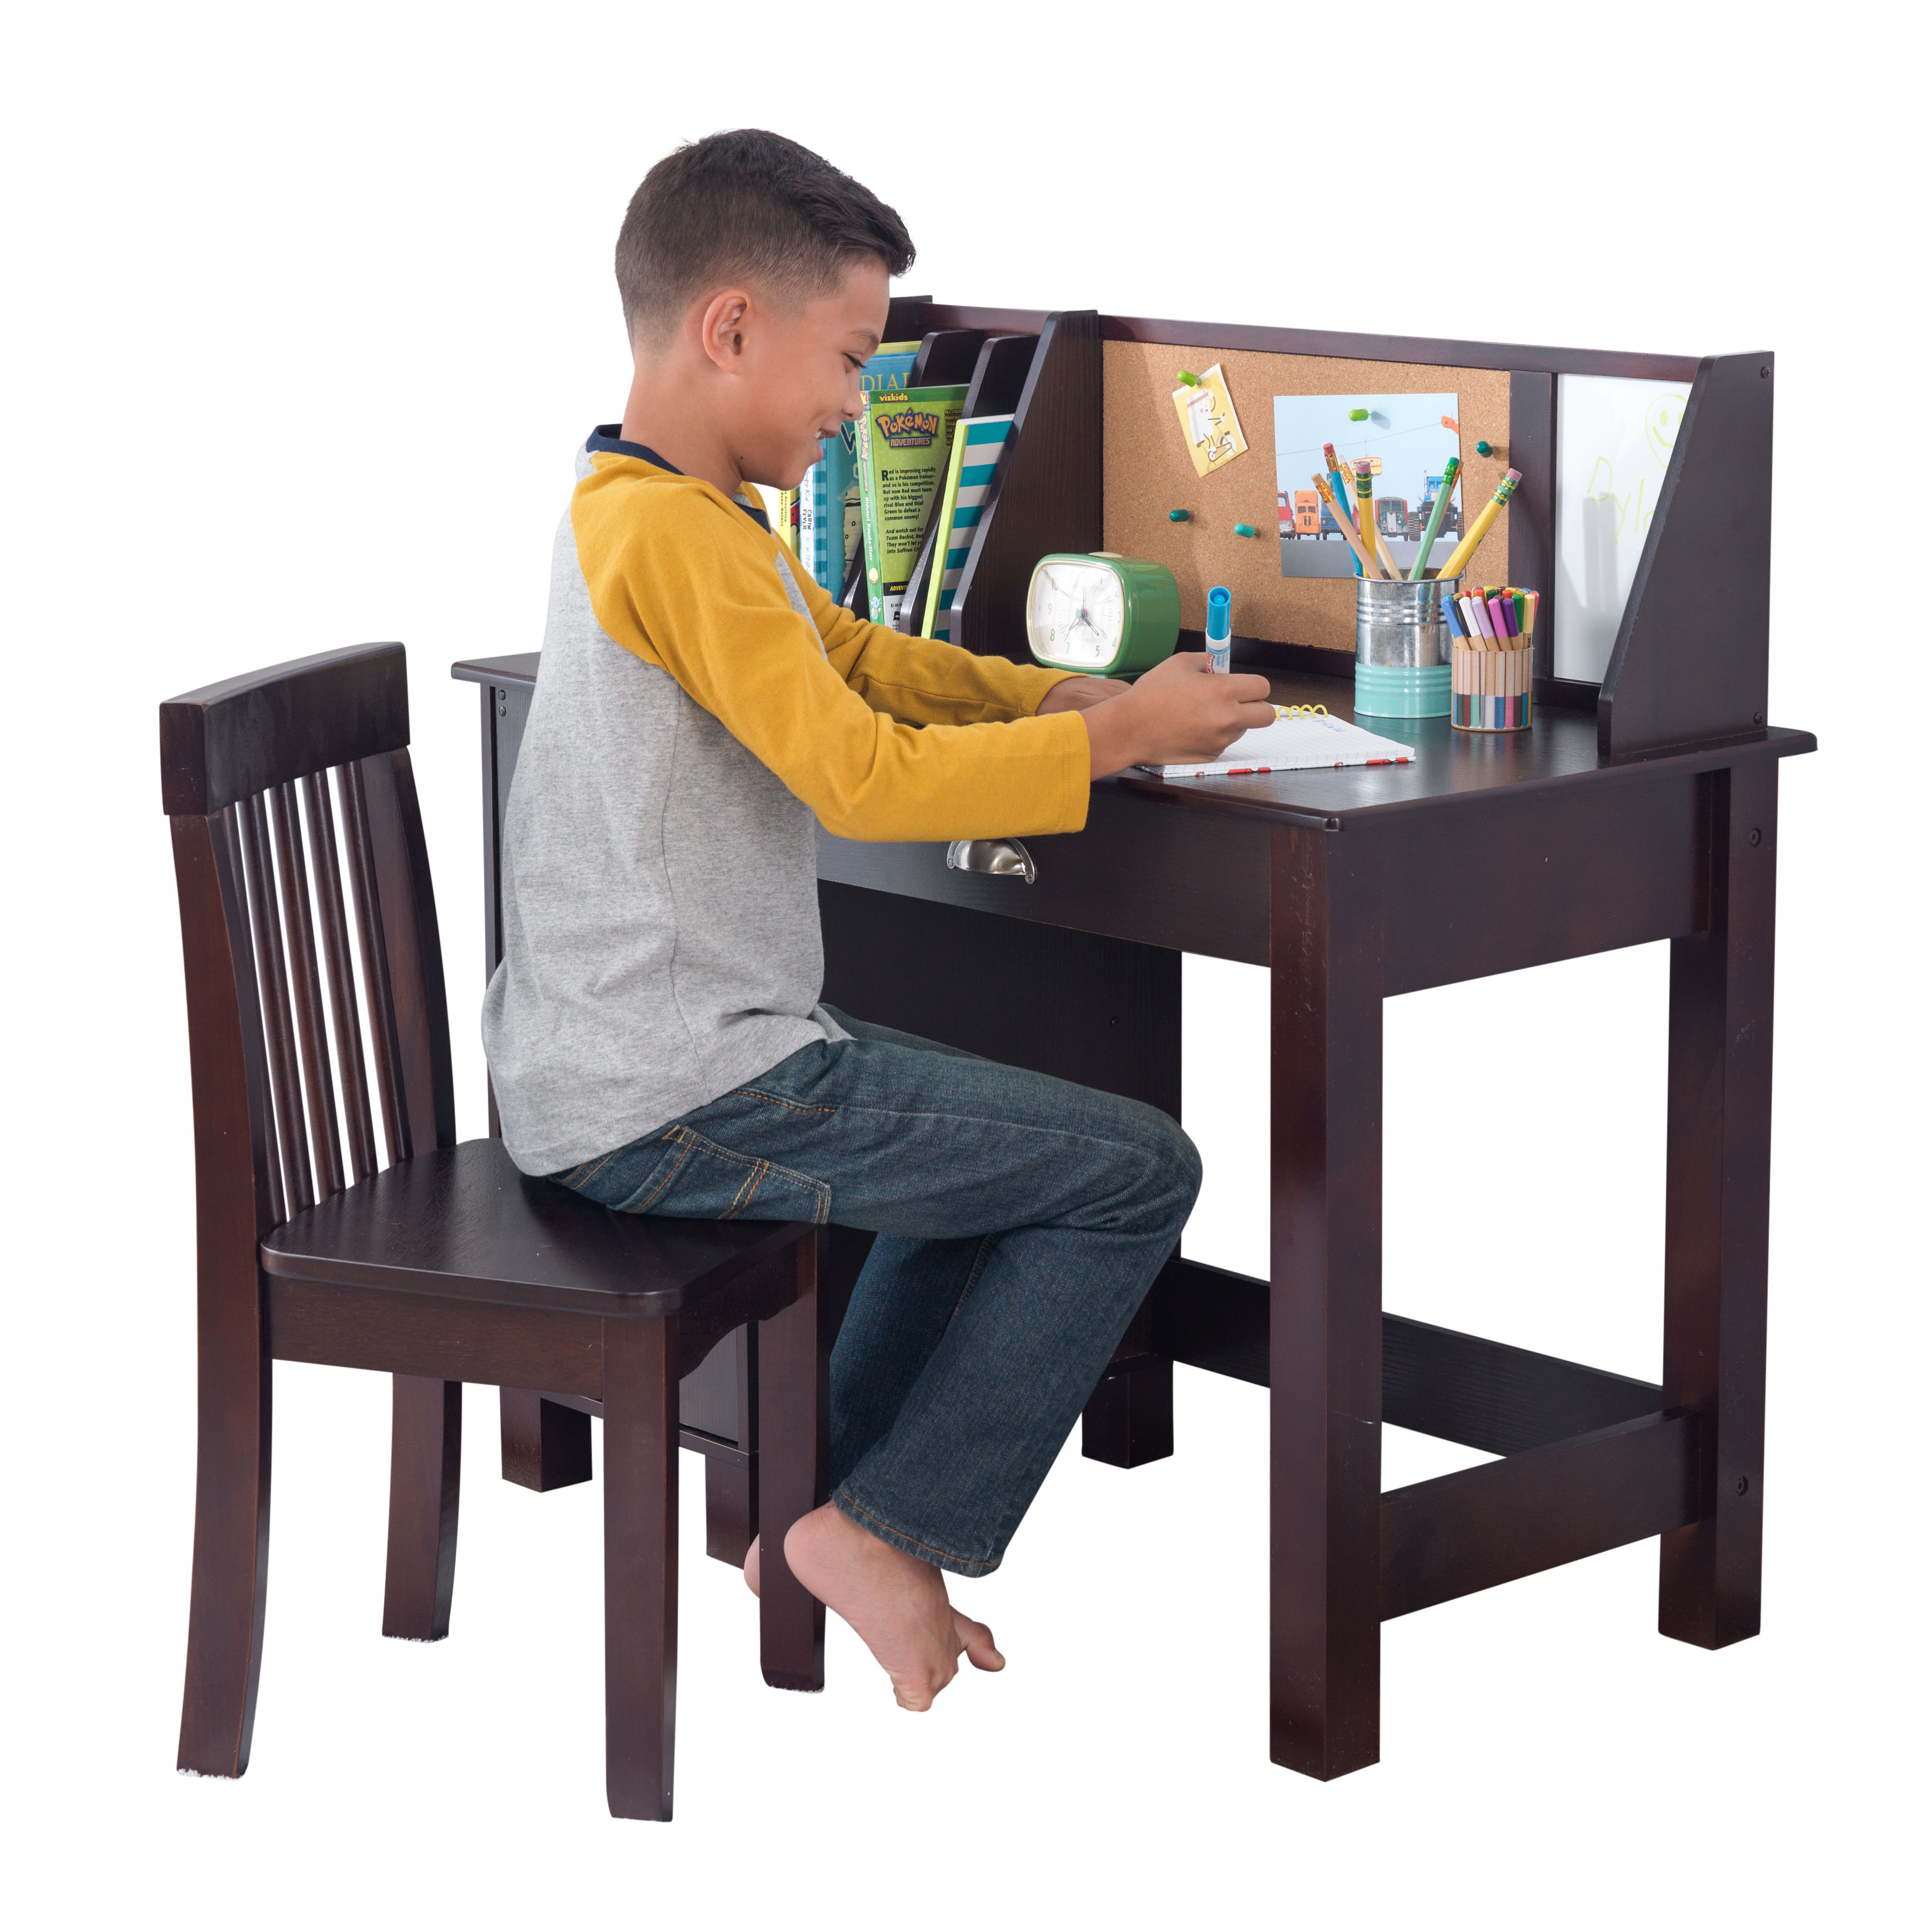 Kidkraft Study Desk With Chair Espresso Kidkraft